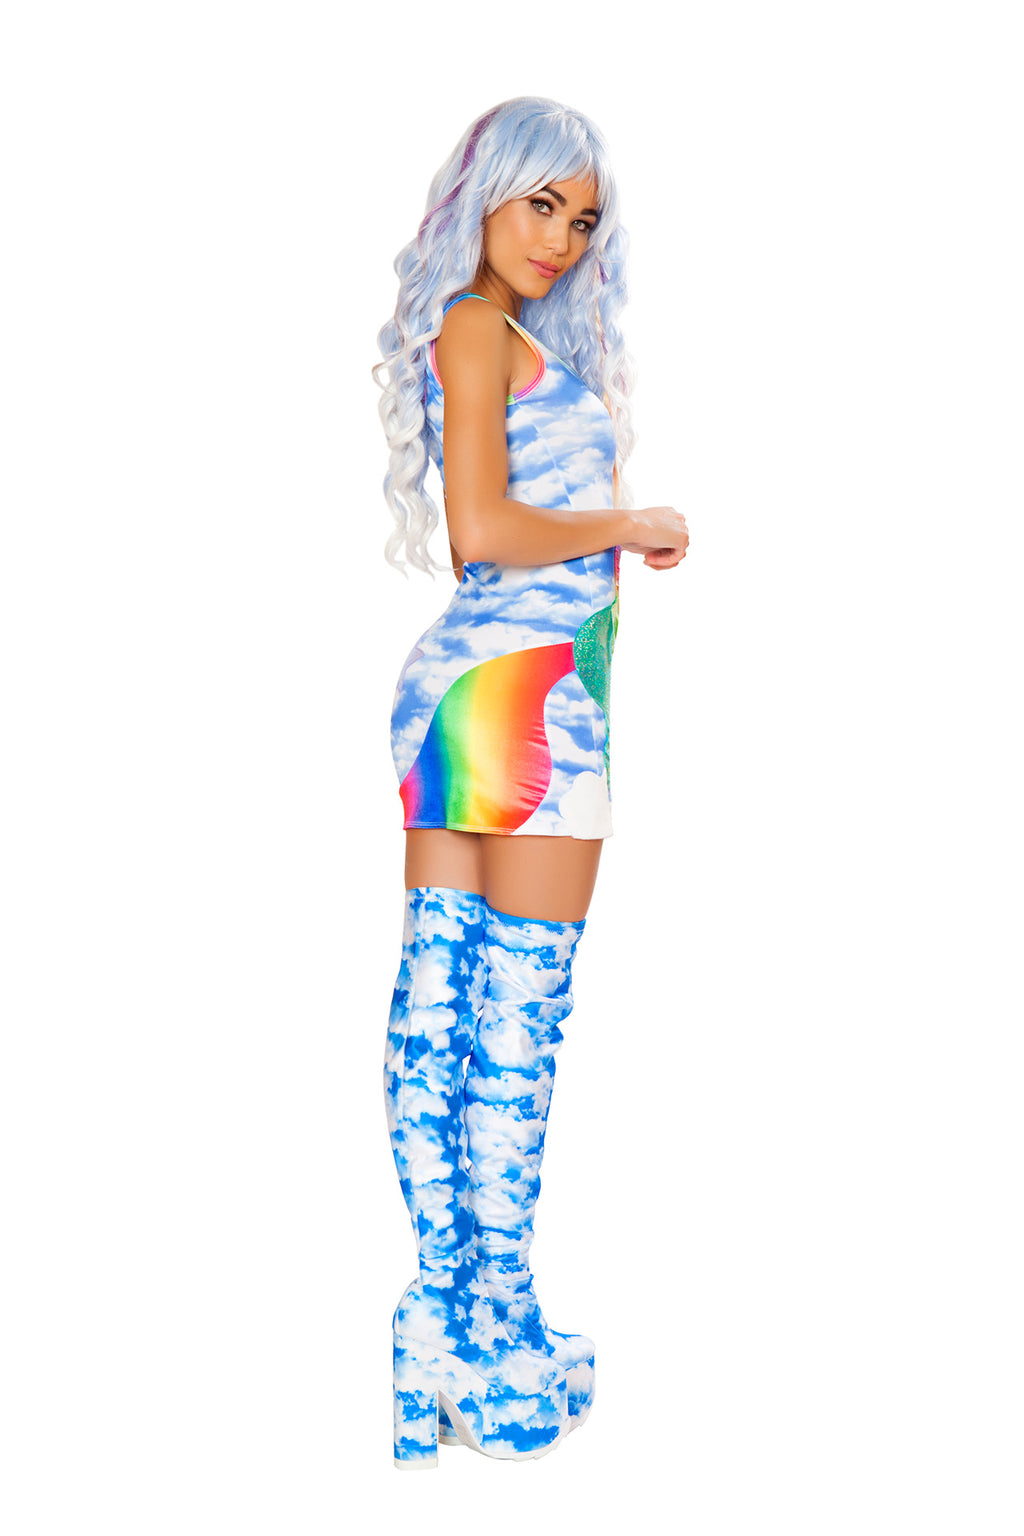 1-PC-Aqua-Unicorn-Pony-Cloud-Printed-Dress-Rave-EDM-Festival-Party-Costume